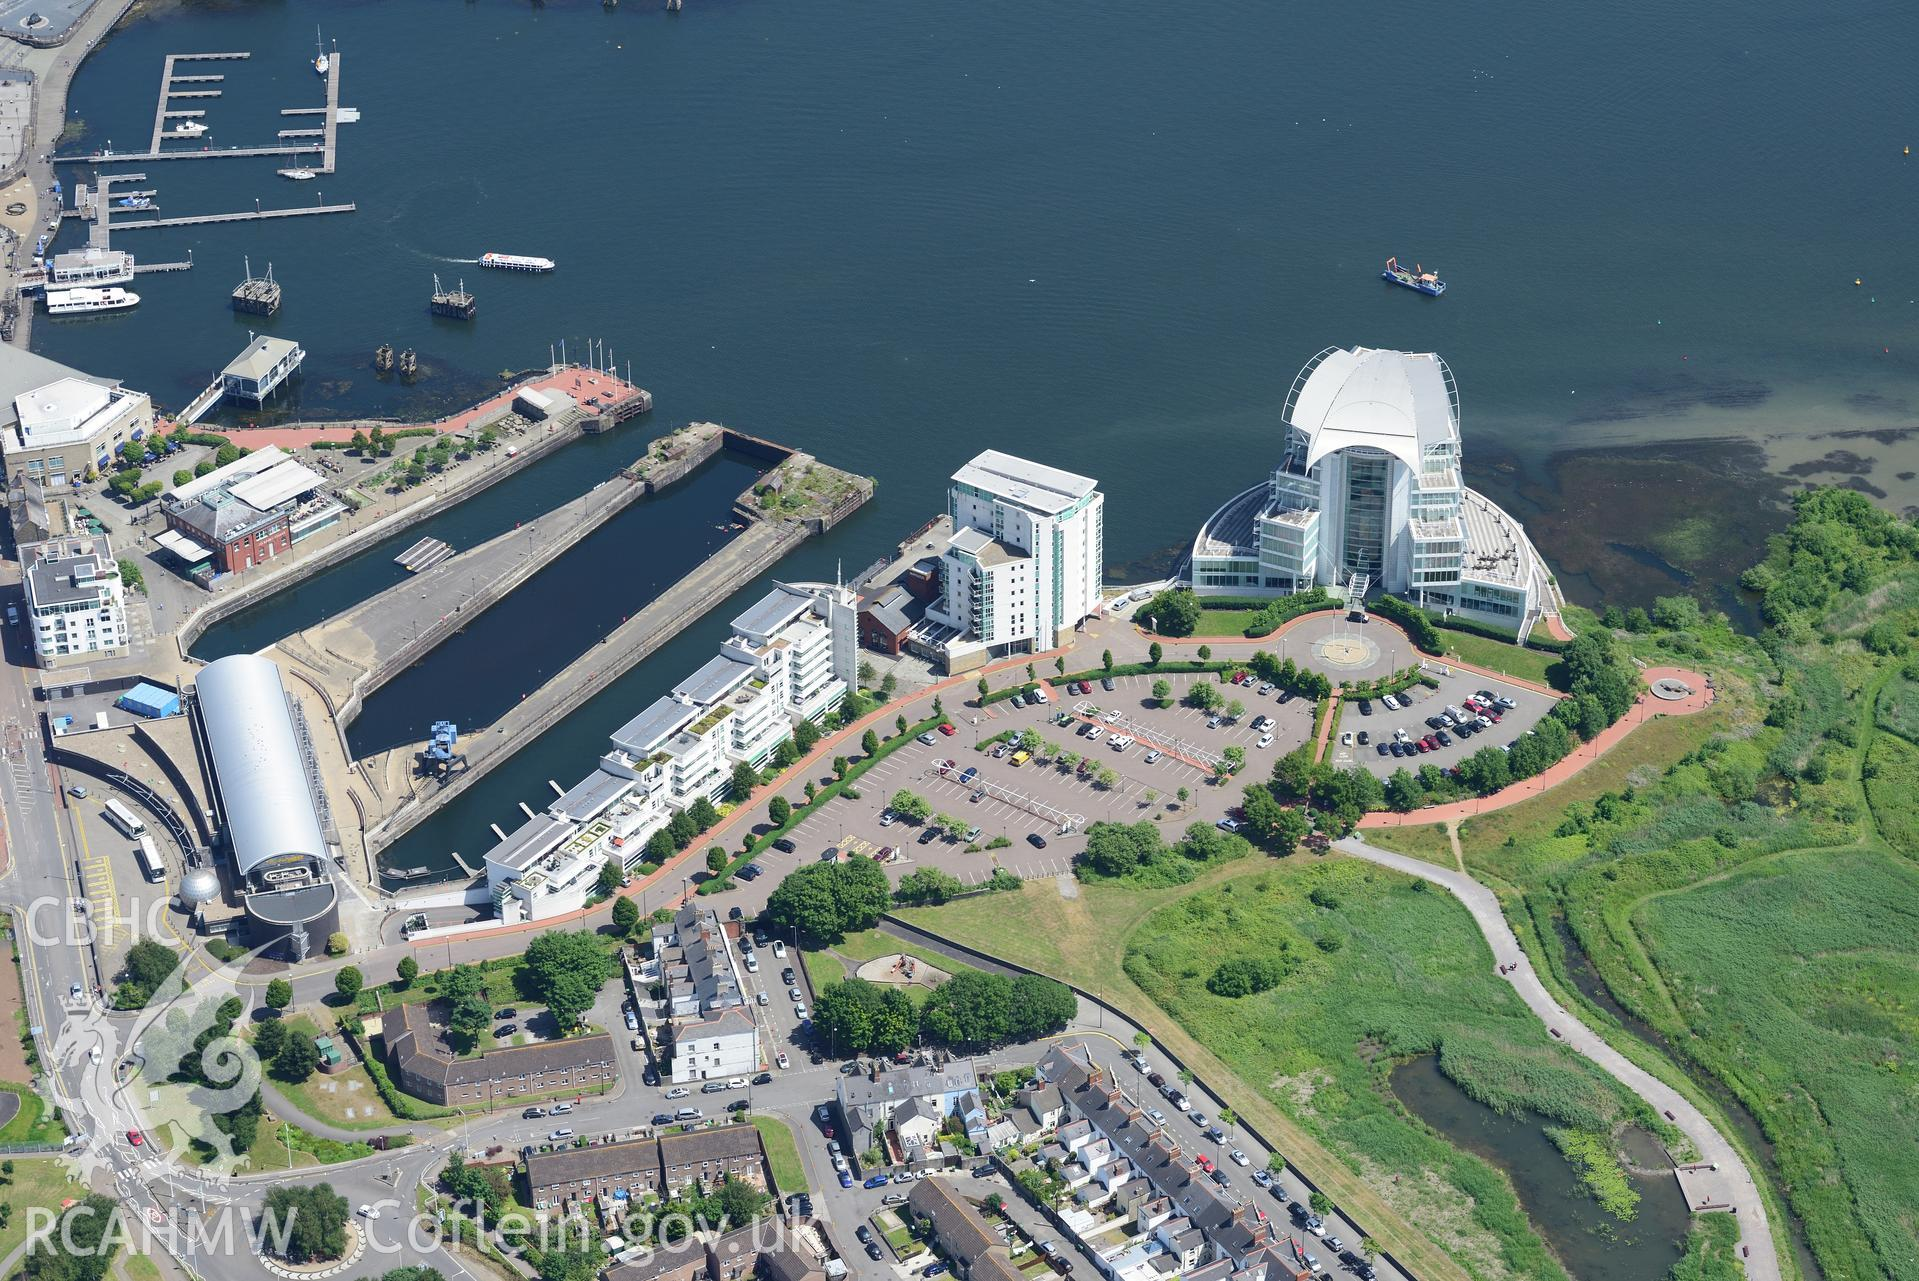 Techniquest and the St. David's Hotel, Cardiff Bay. Oblique aerial photograph taken during the Royal Commission's programme of archaeological aerial reconnaissance by Toby Driver on 29th June 2015.